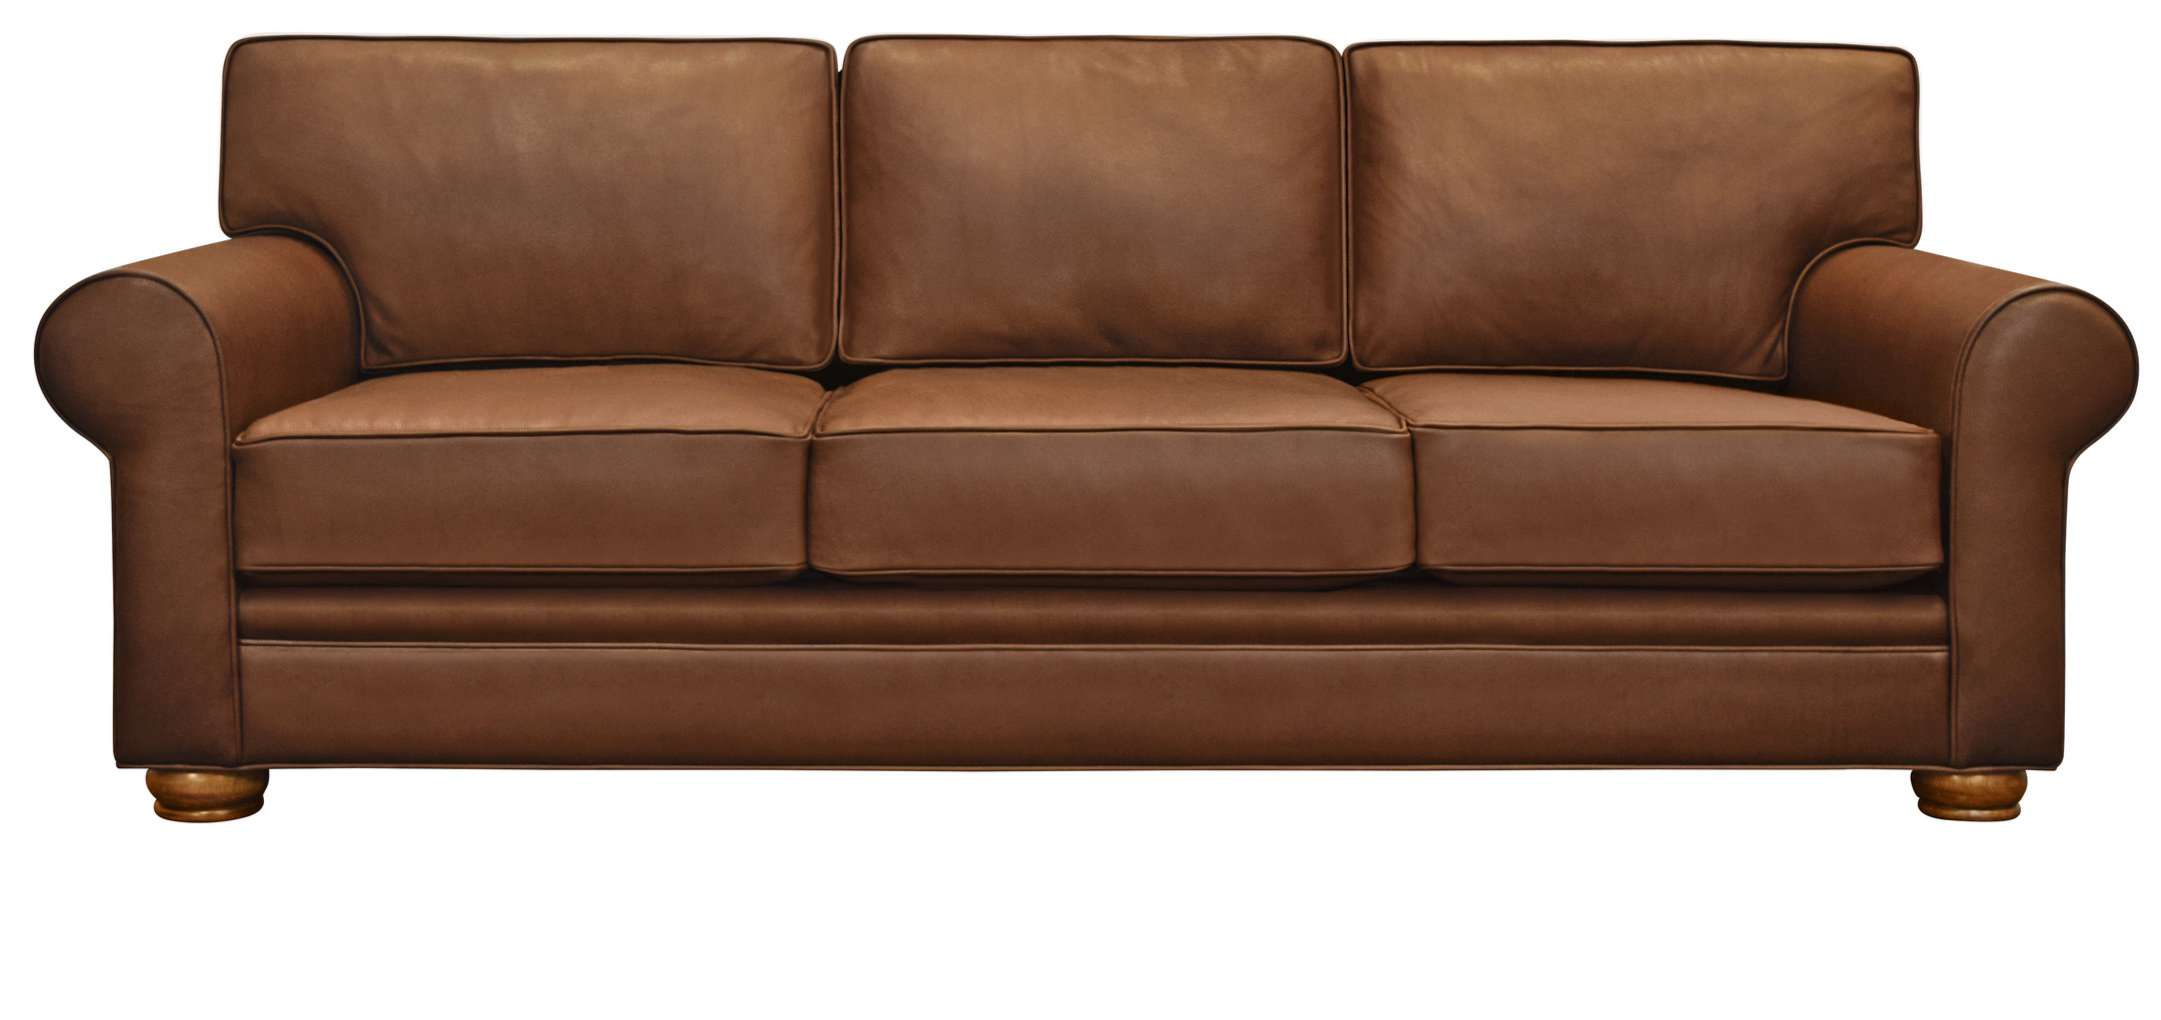 Gina Couch